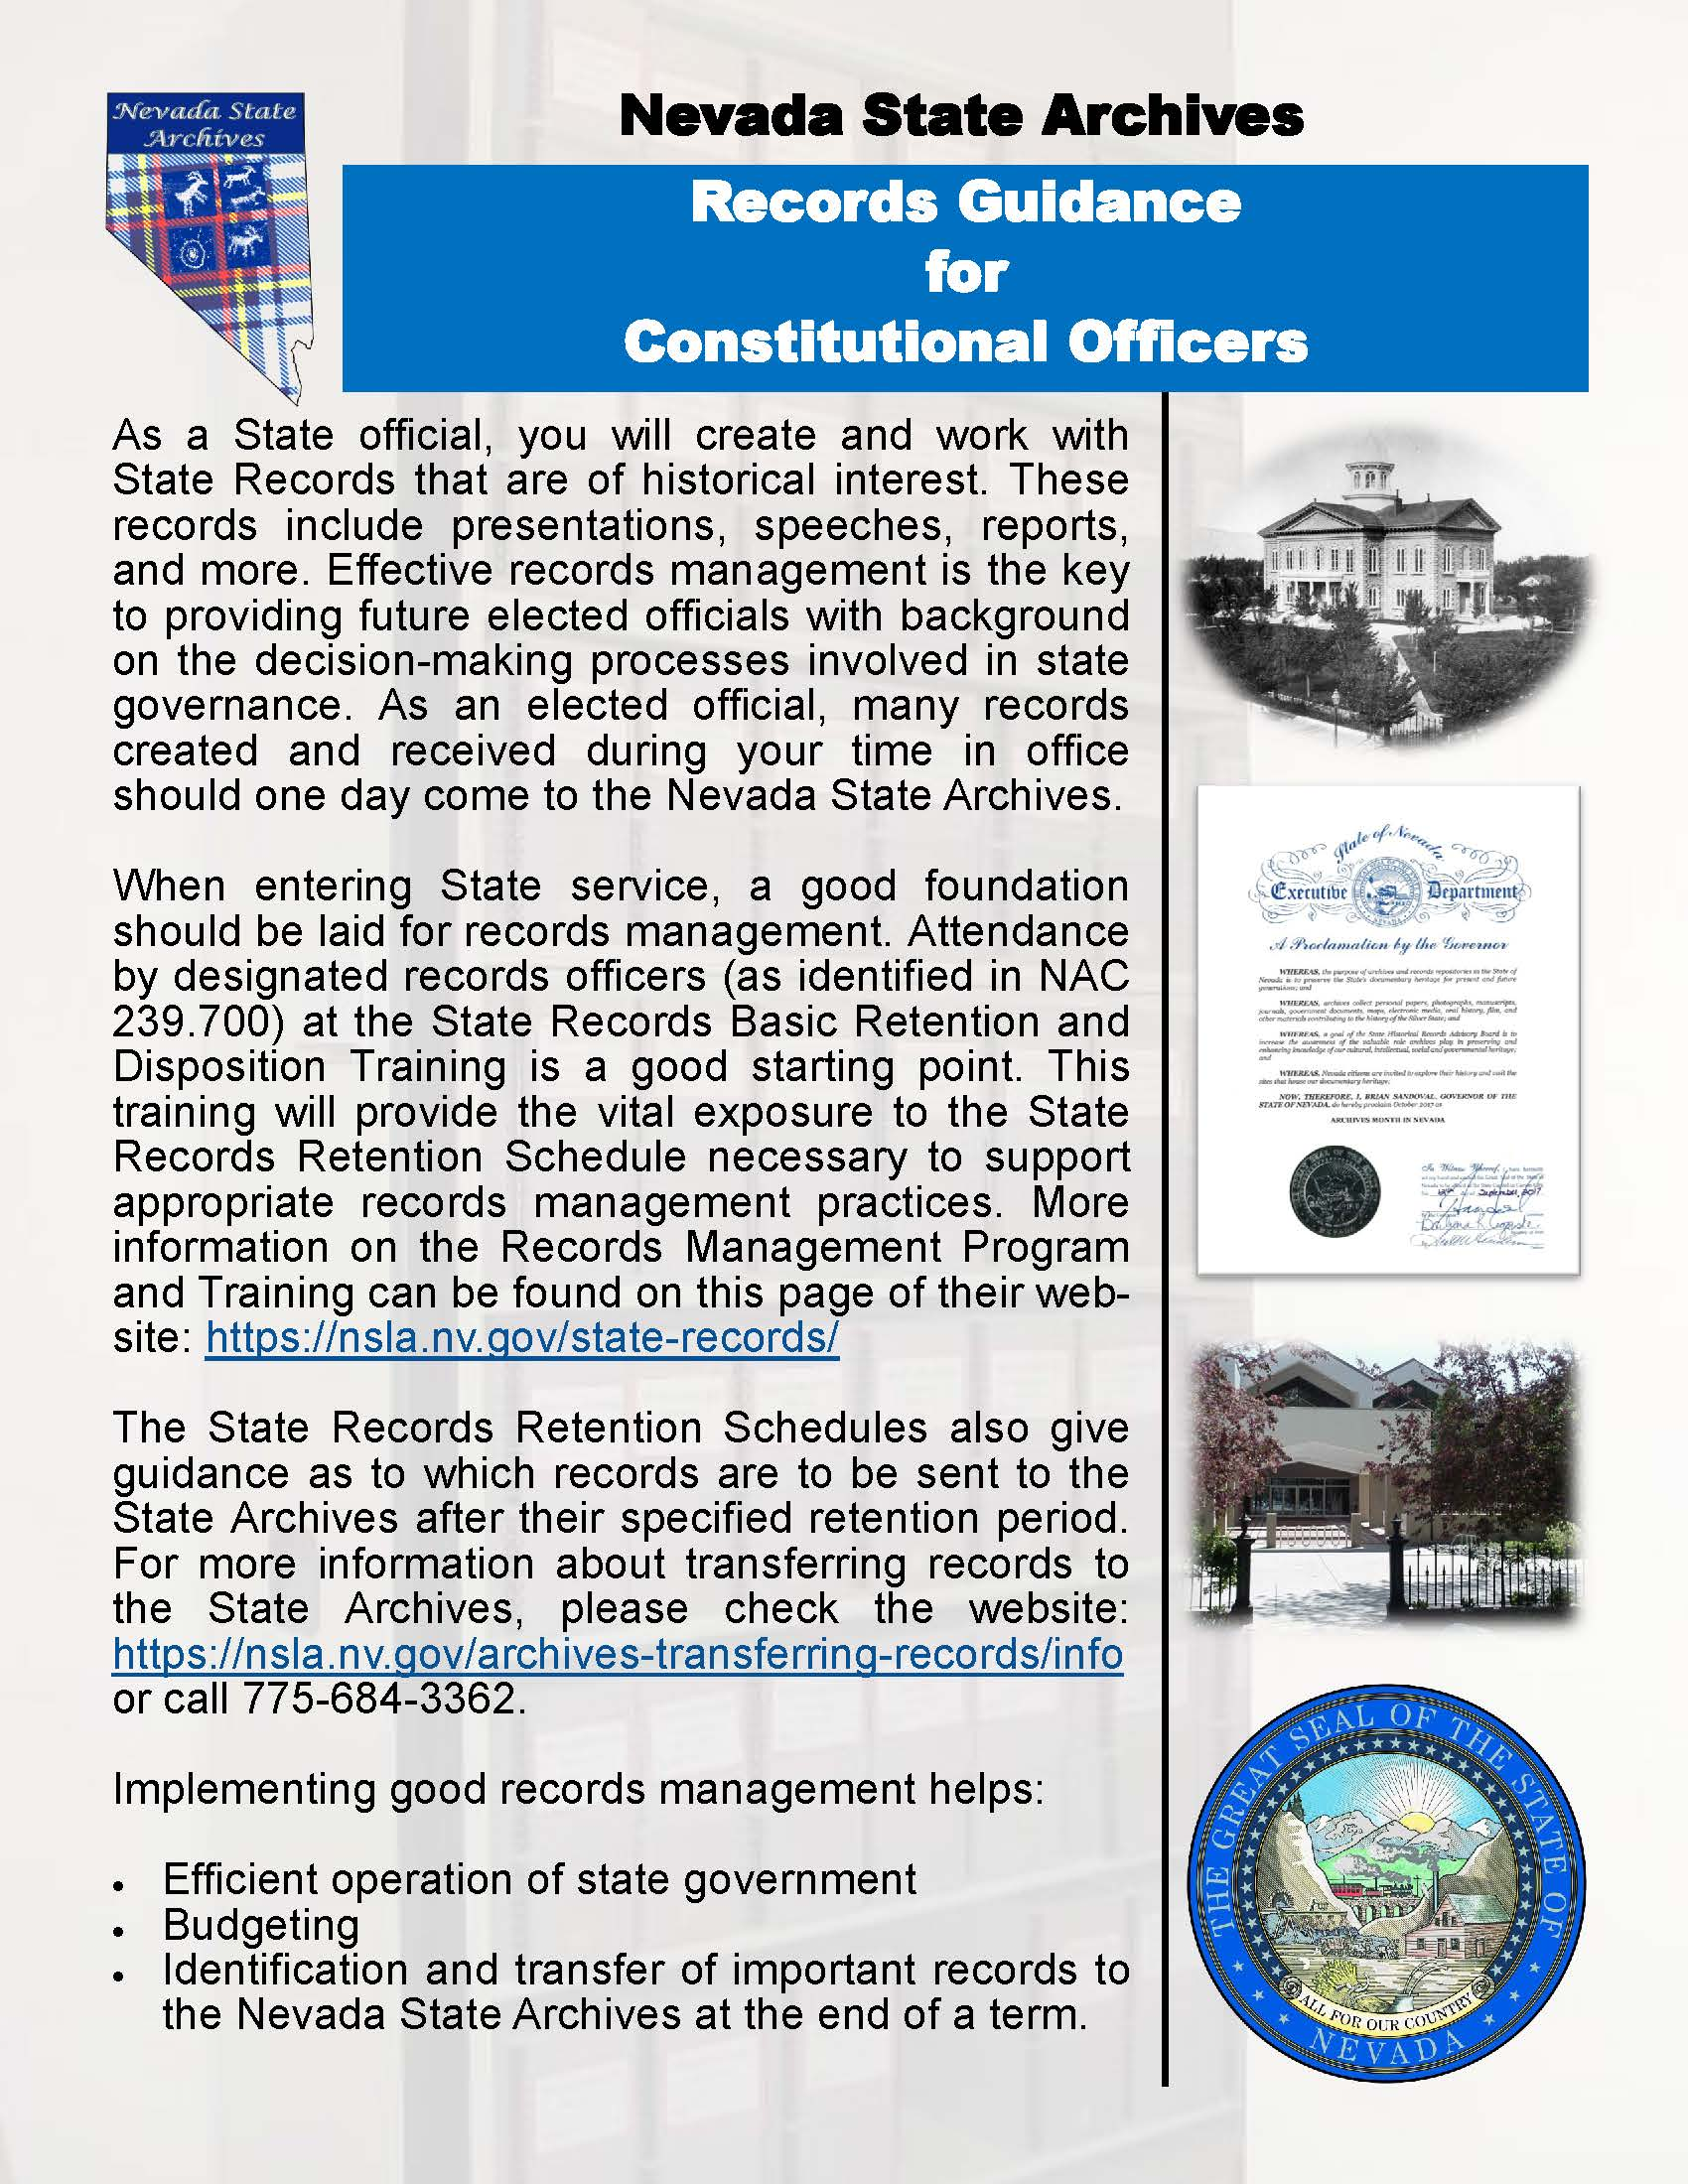 Image link to the Records Guidelines for Constitutional Officers pdf